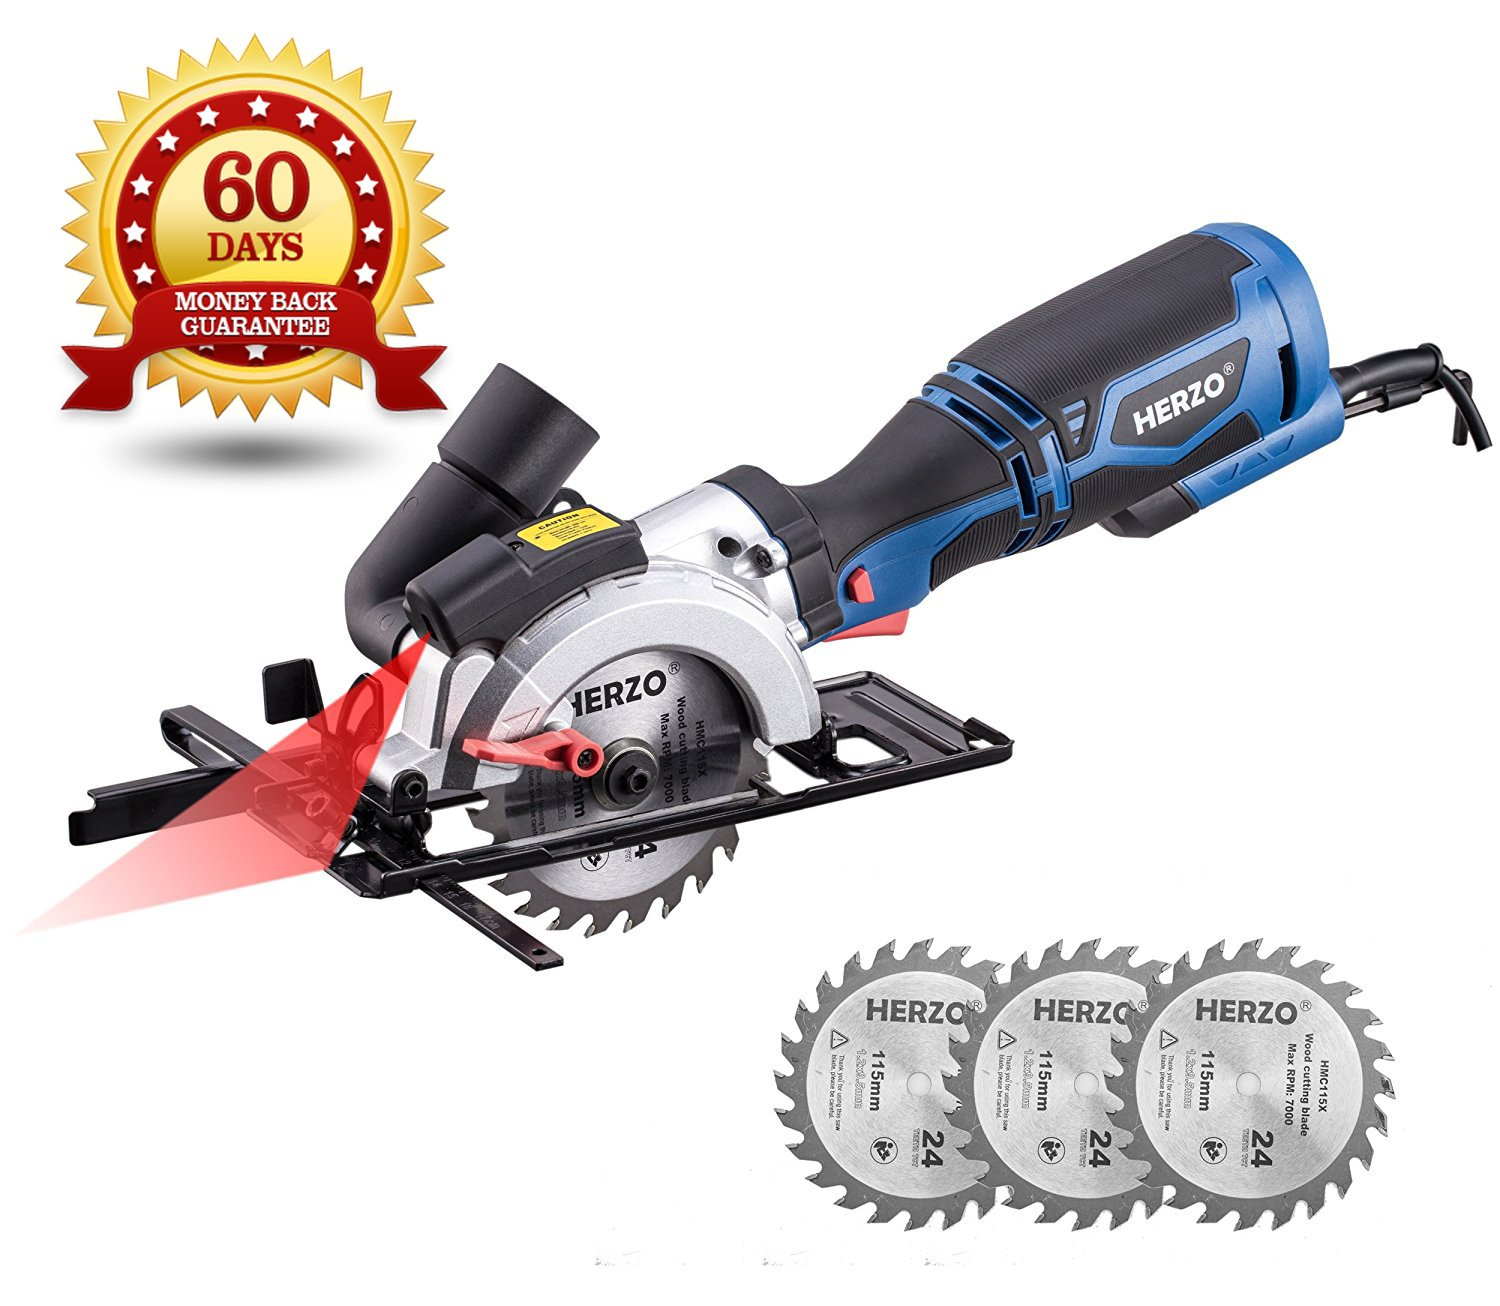 HERZO Compact Circular Saw 4-1/2'' with Laser Guide, Max Cutting Depth 1-9/10'' (90°), 1-3/10'' (0°-45°) with 3 Wood Cutting Blades - 5.8A 3500 rpm